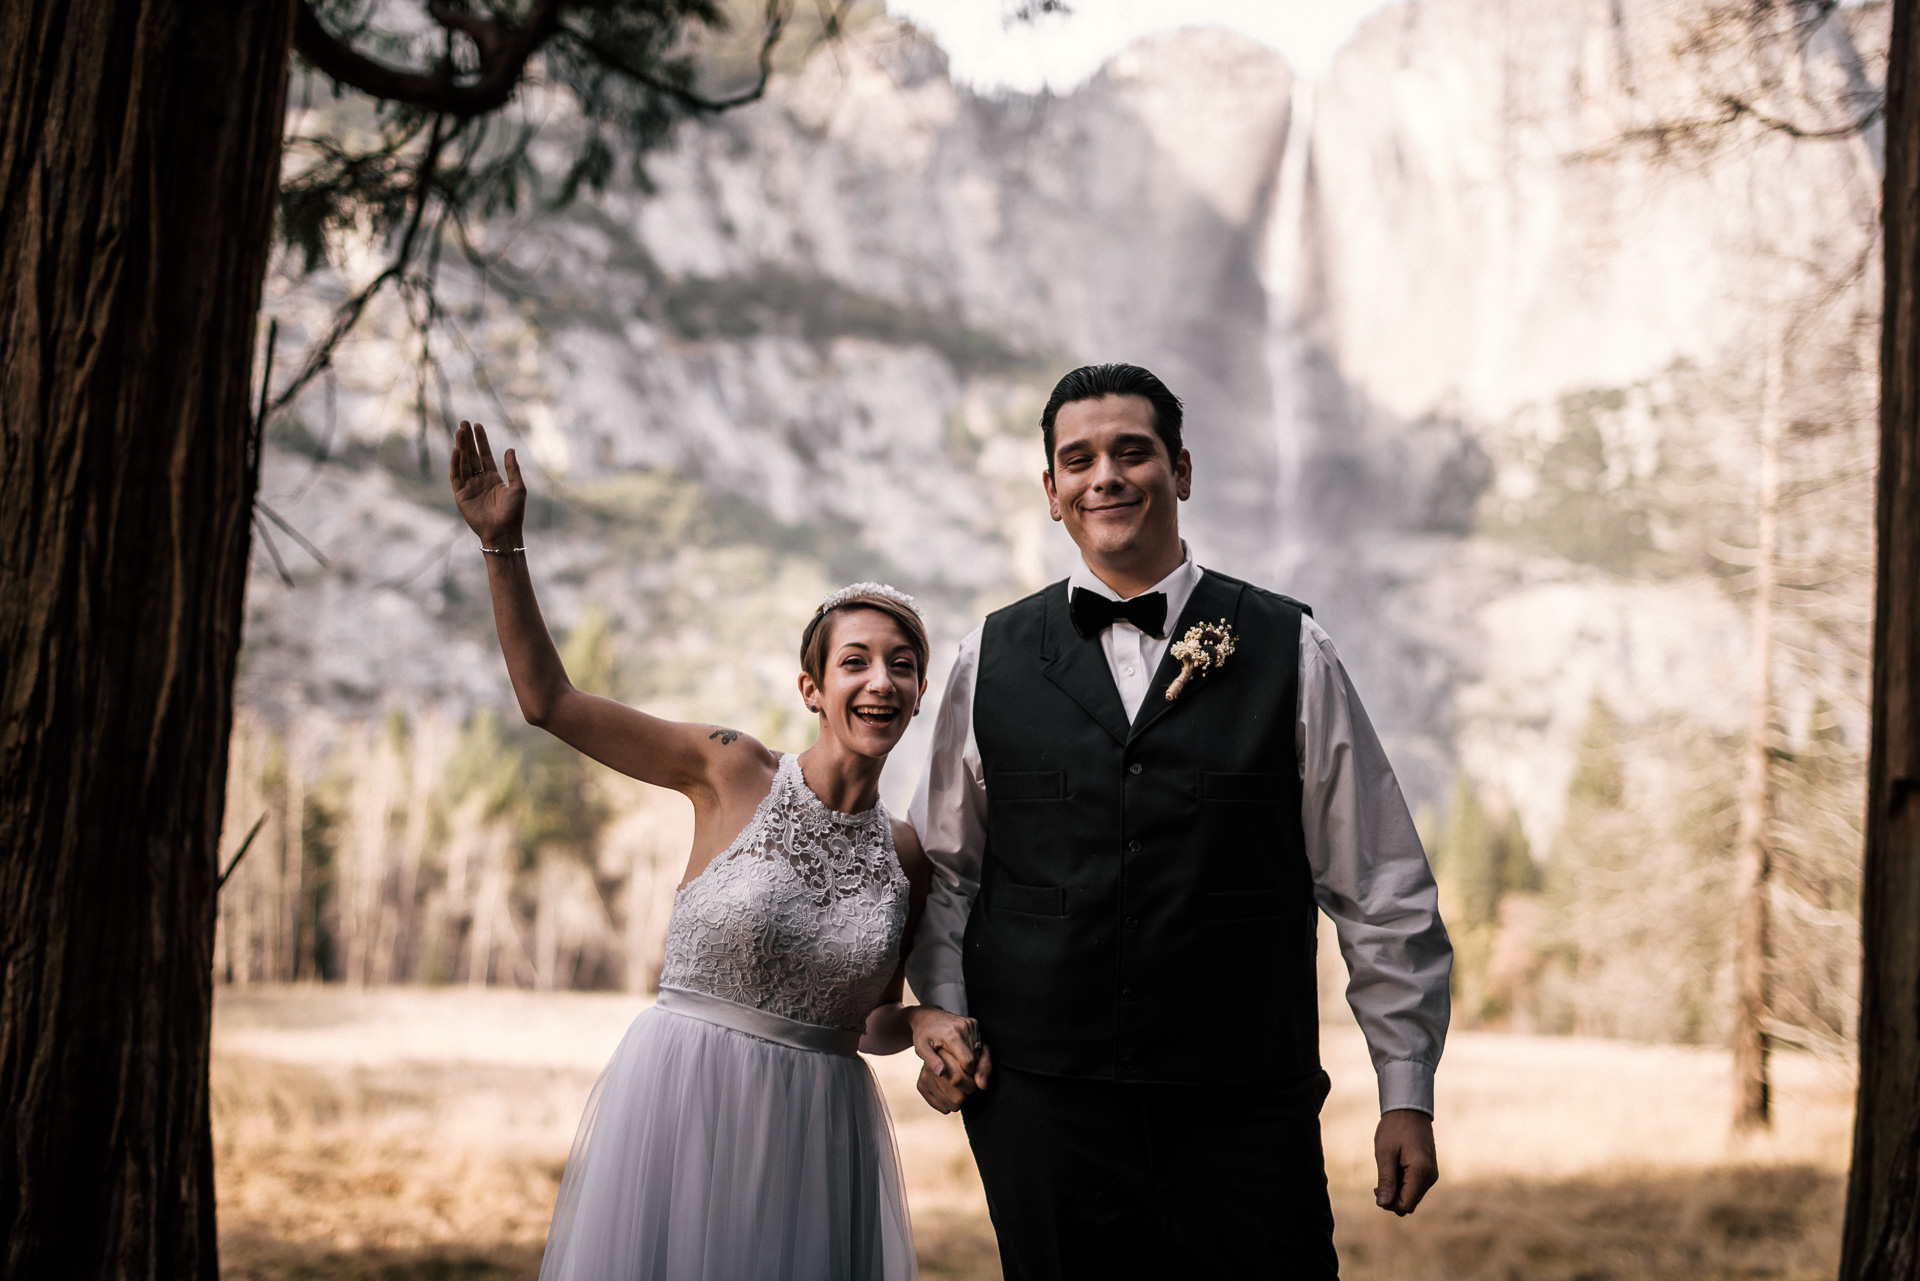 Newly wedded couple celebrates in yosemite national park after their elopement at swinging bridge